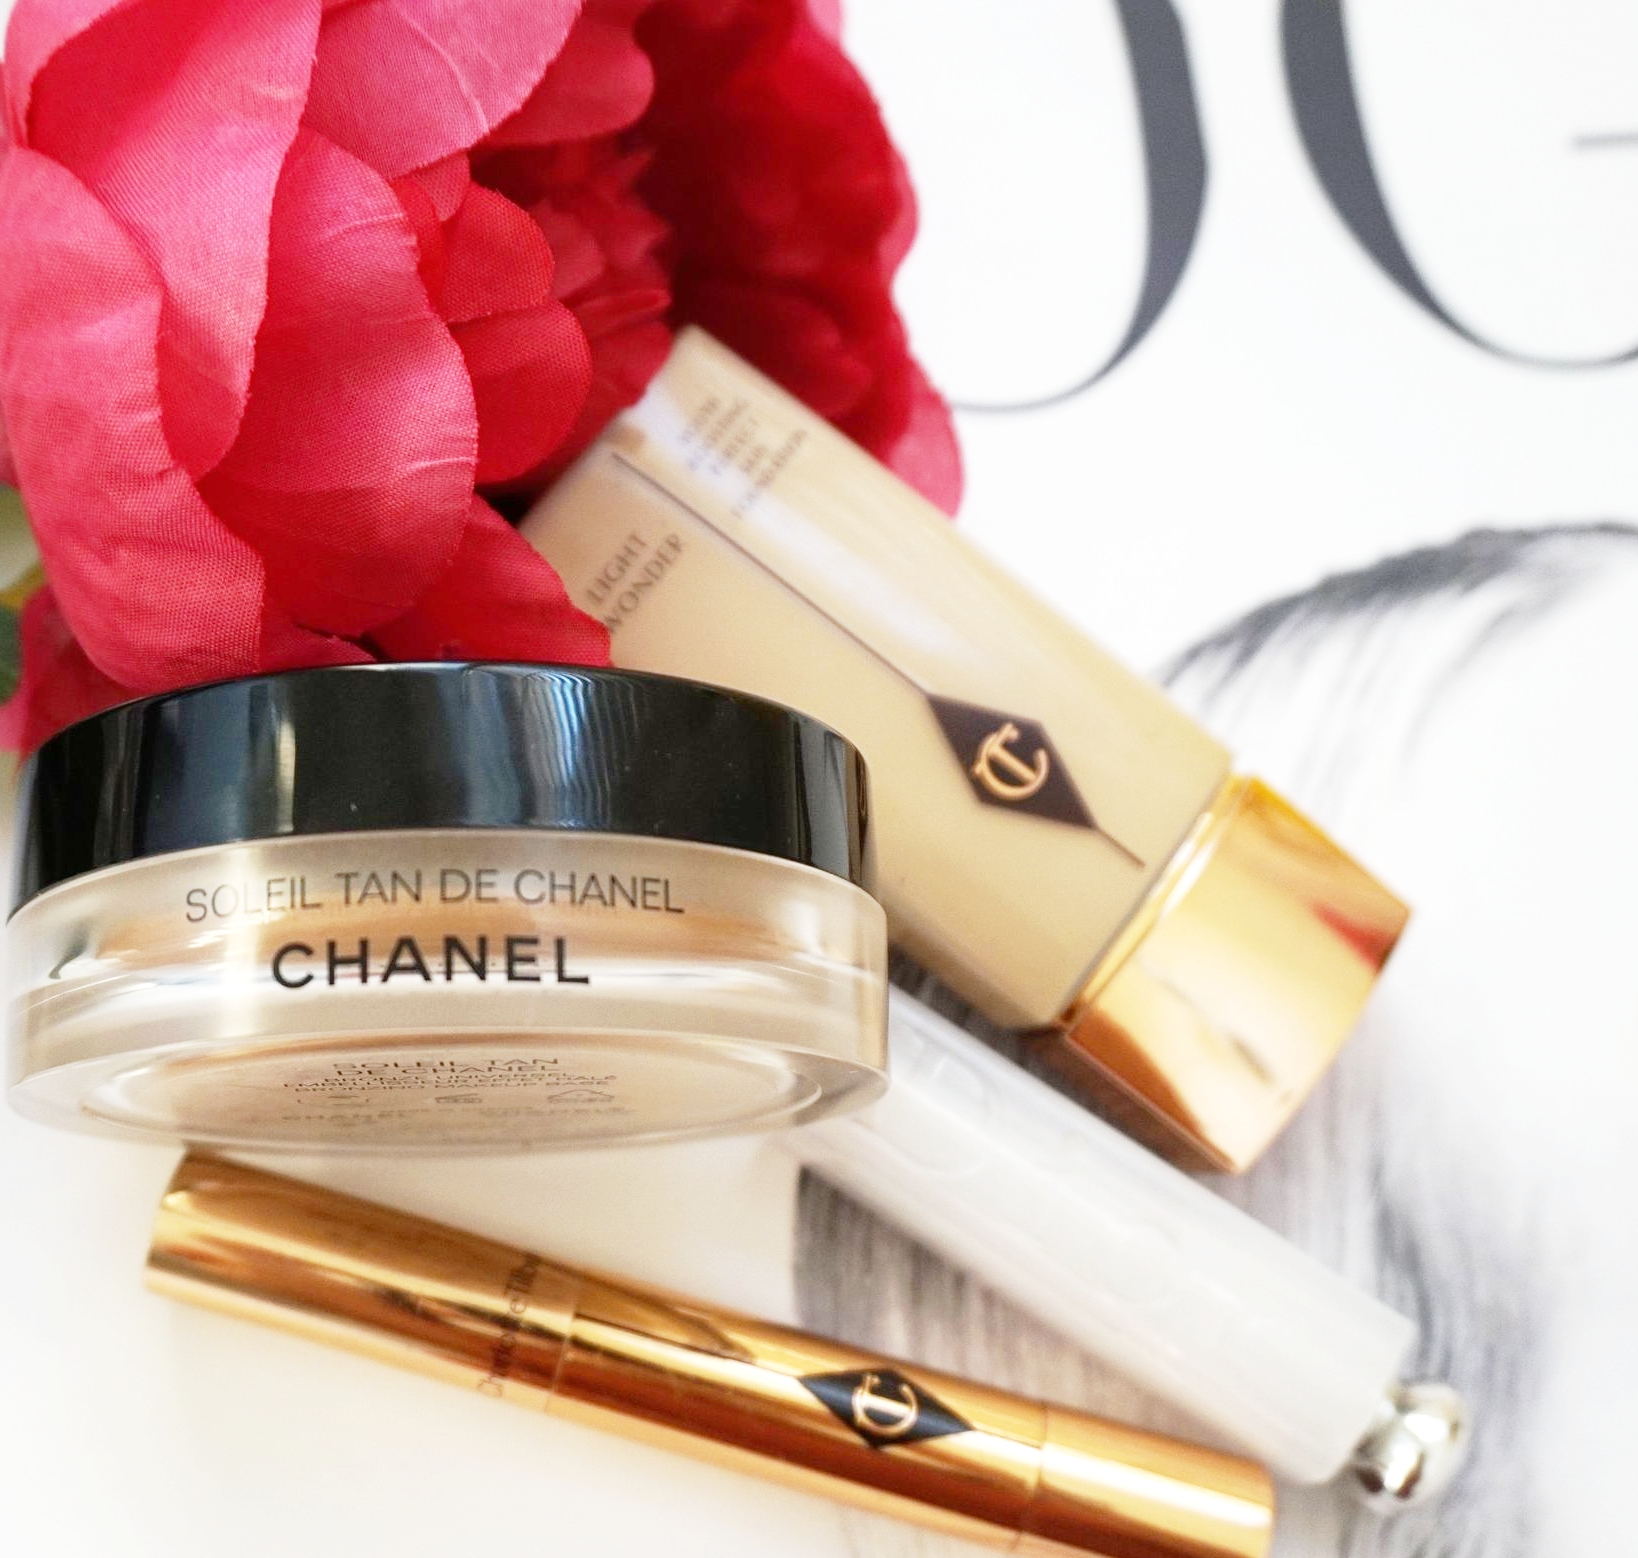 1.  Dior Makeup Fix it 2 in 1 Prime and Conceal ($45CAN)   2. Charlotte Tilbury The Retoucher Concealer ($48 CAN)   3. Charlotte Tilbury Light Wonder Foundation 6 ($55 CAN)   4. Chanel Soleil Tan De Chanel ($50CAN)